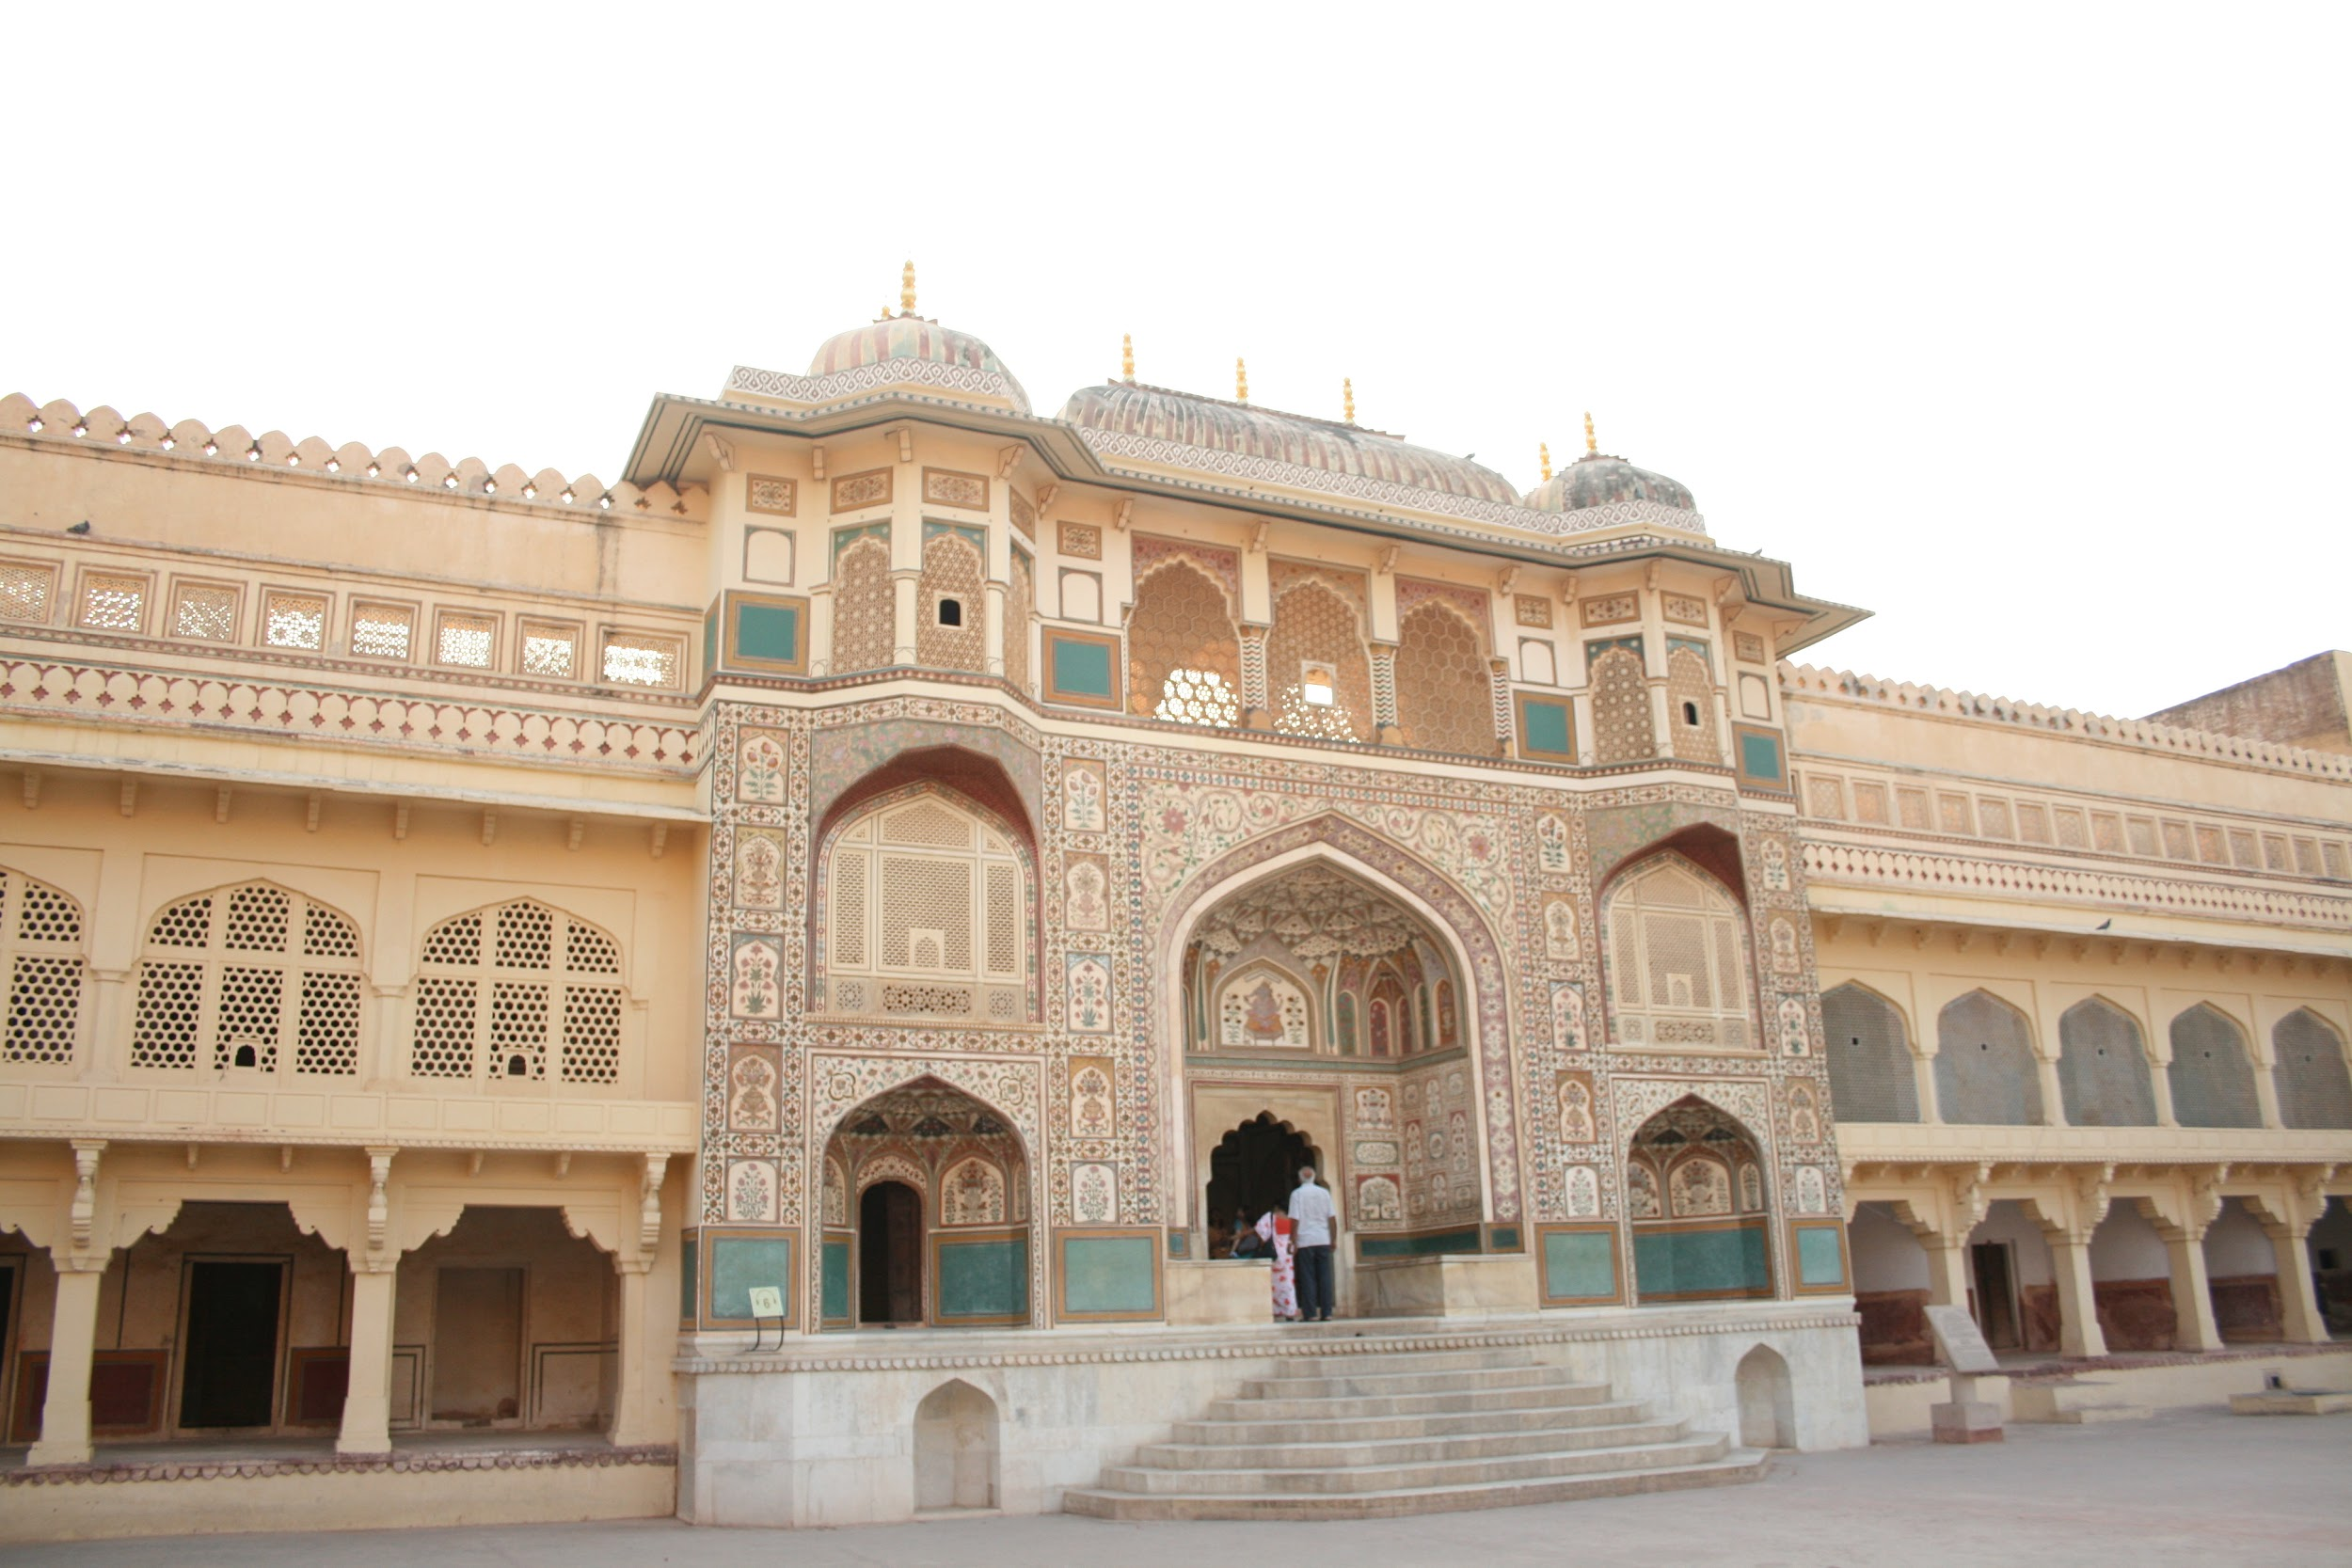 Amer fort rajasthan, India